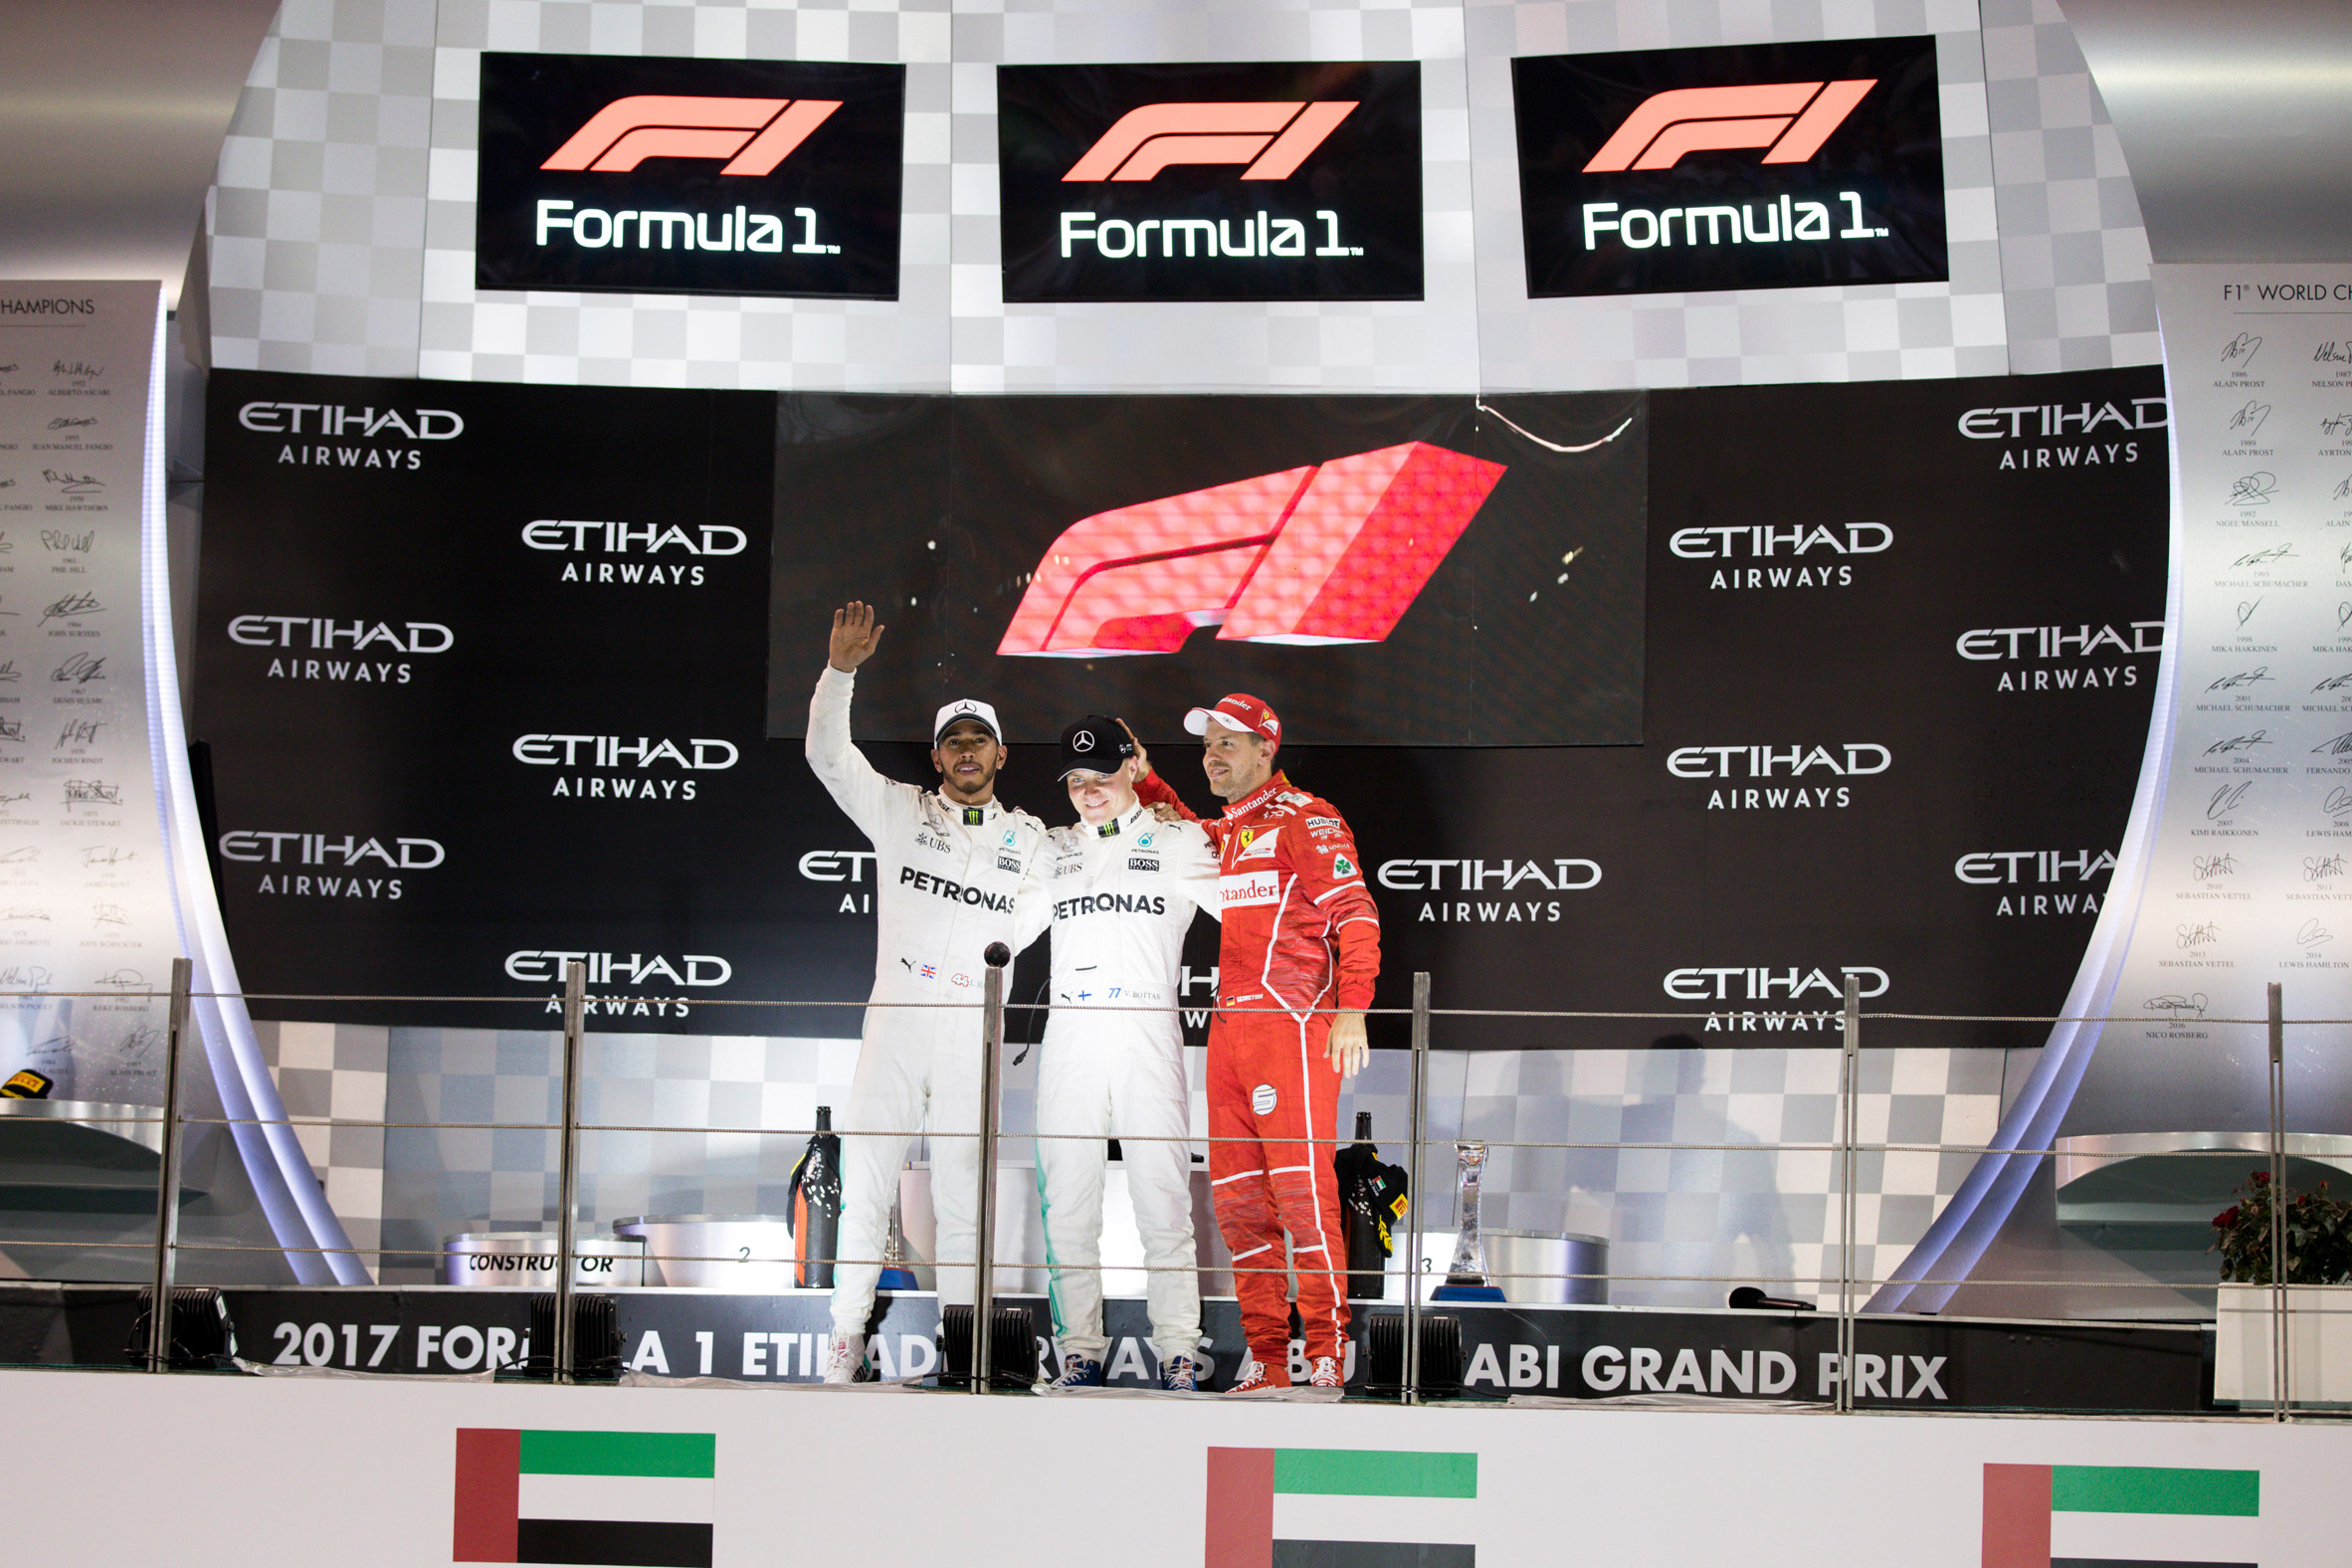 Formula One - F1 News and Videos cover image